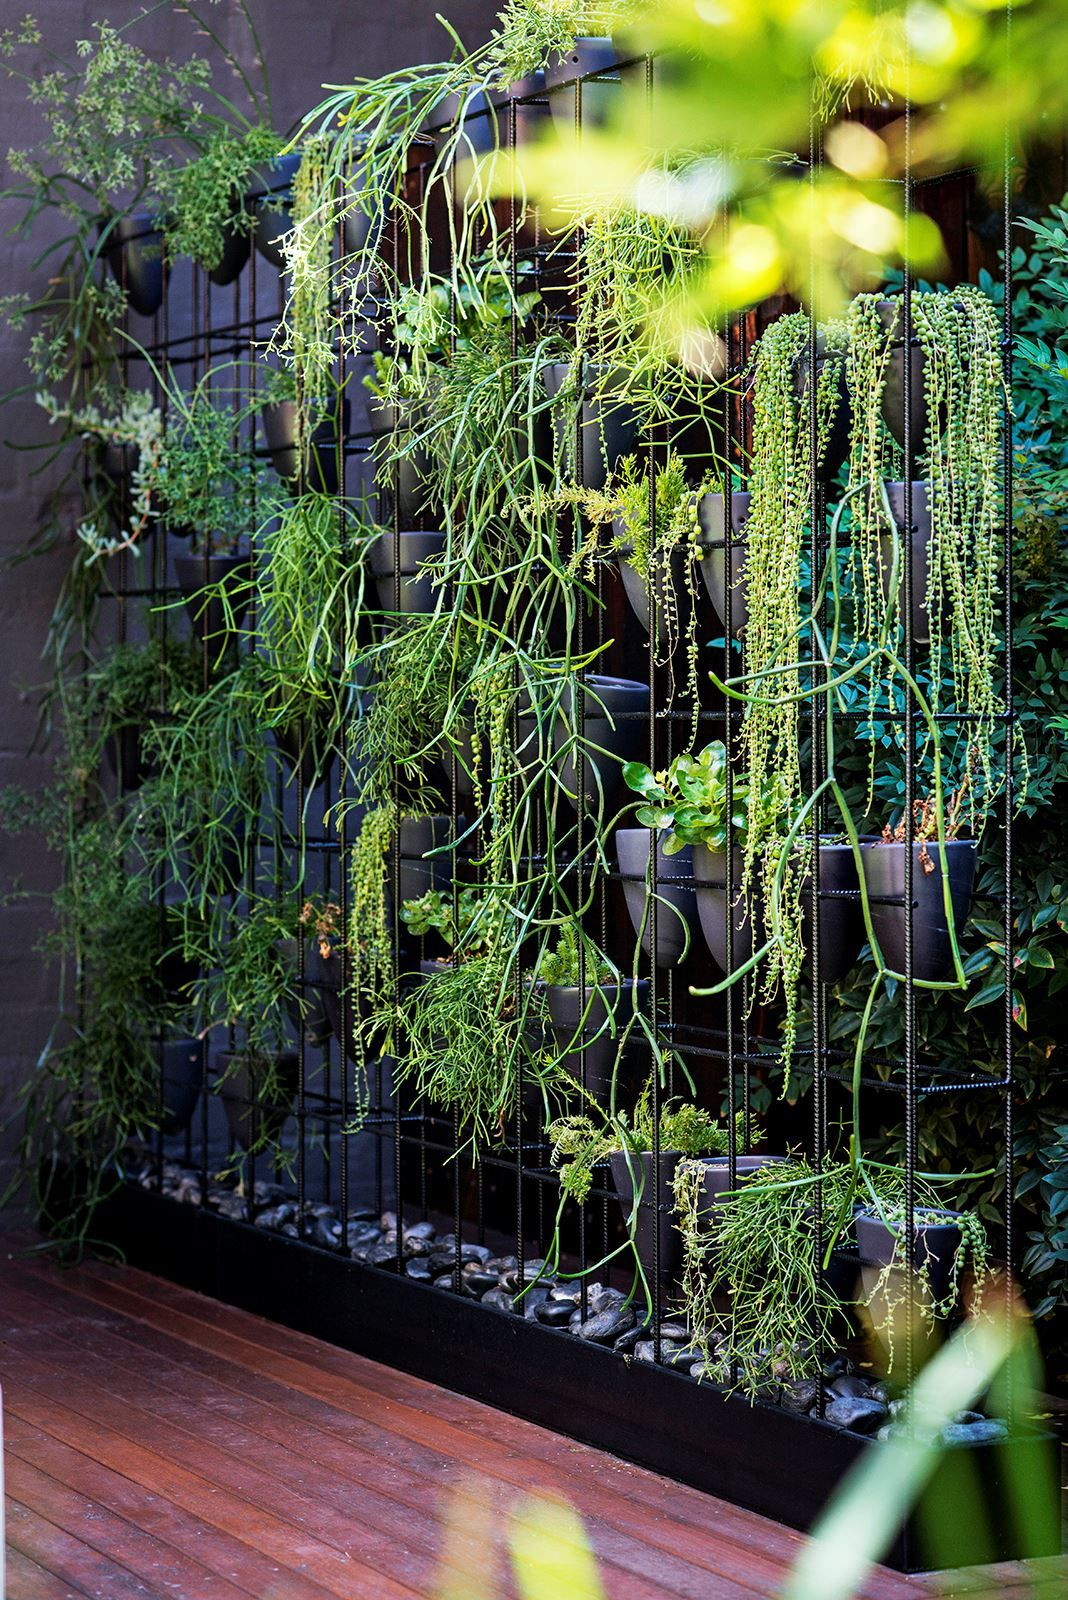 Urban wall garden far out flora - Industrial Style Urban Courtyard This Green Wall Located On The Deck Level Of The Courtyard Consists Of A Steel Box Frame With Hand Thrown Pots Perched